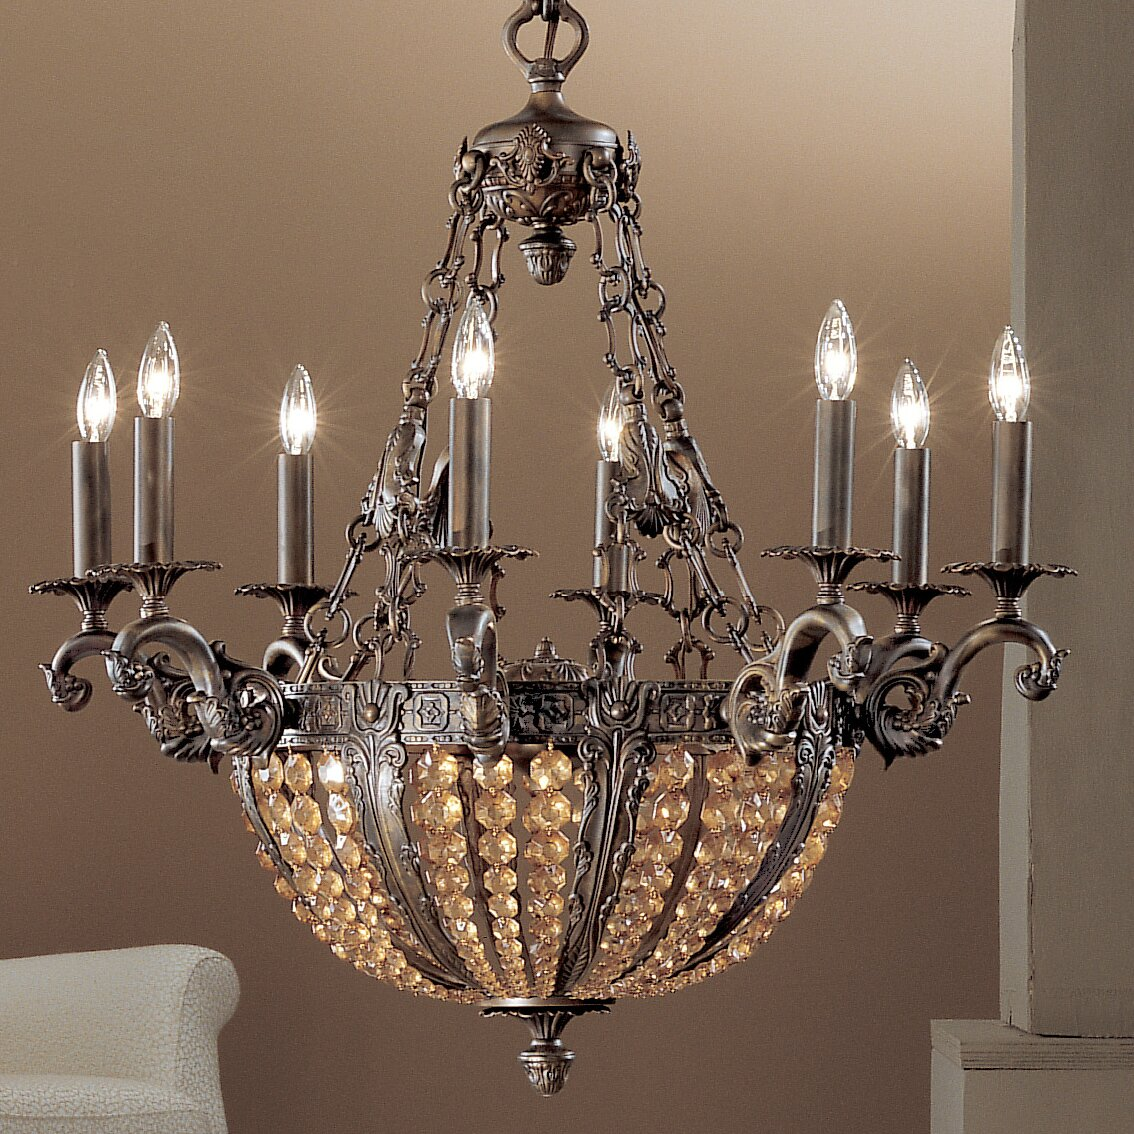 Wayfair Lights: Classic Lighting Merlot 12 Light Crystal Chandelier